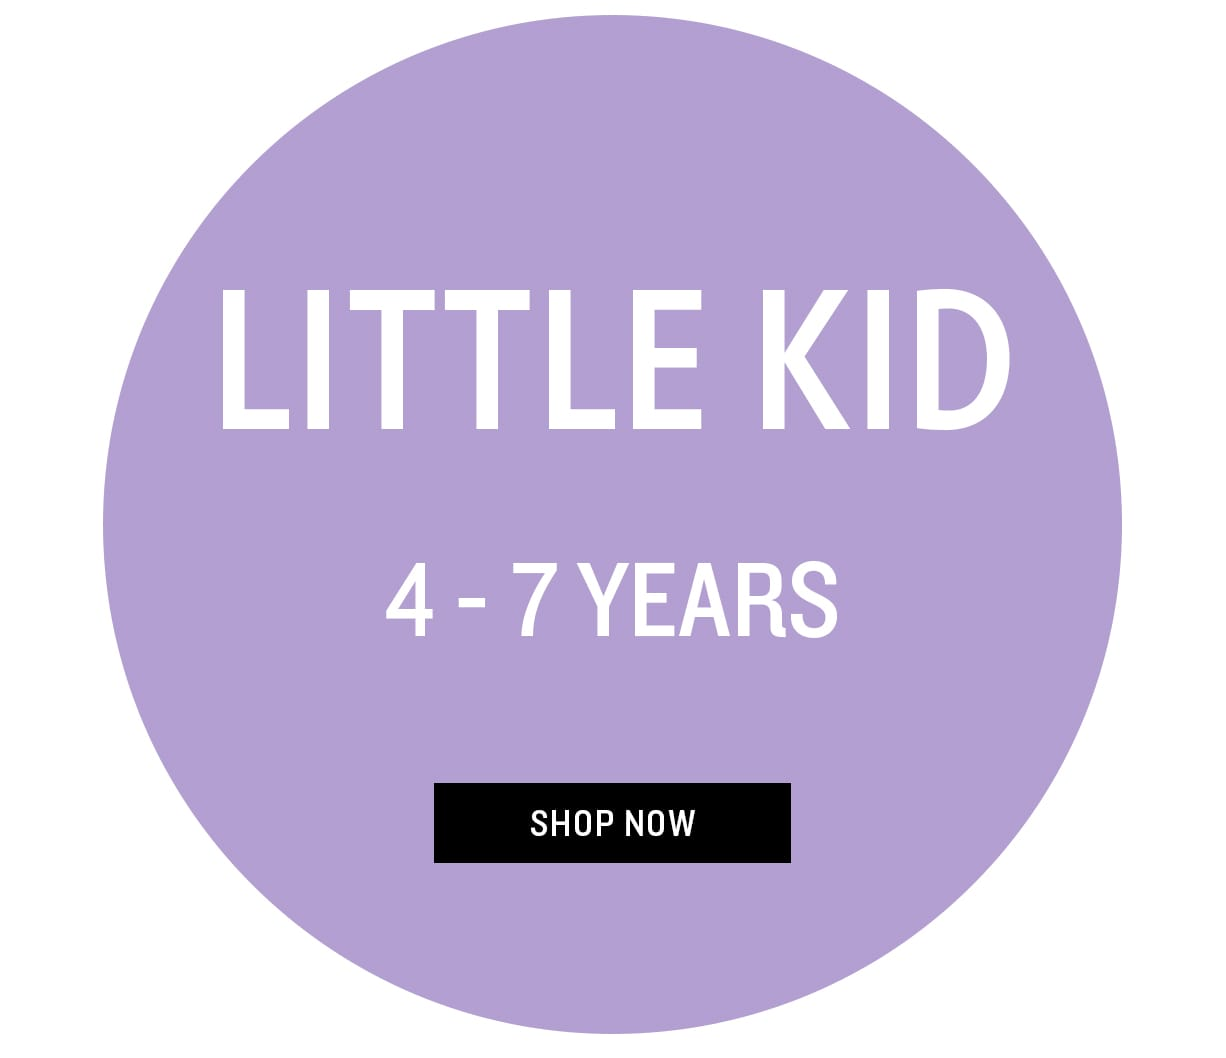 Shop Little Kid